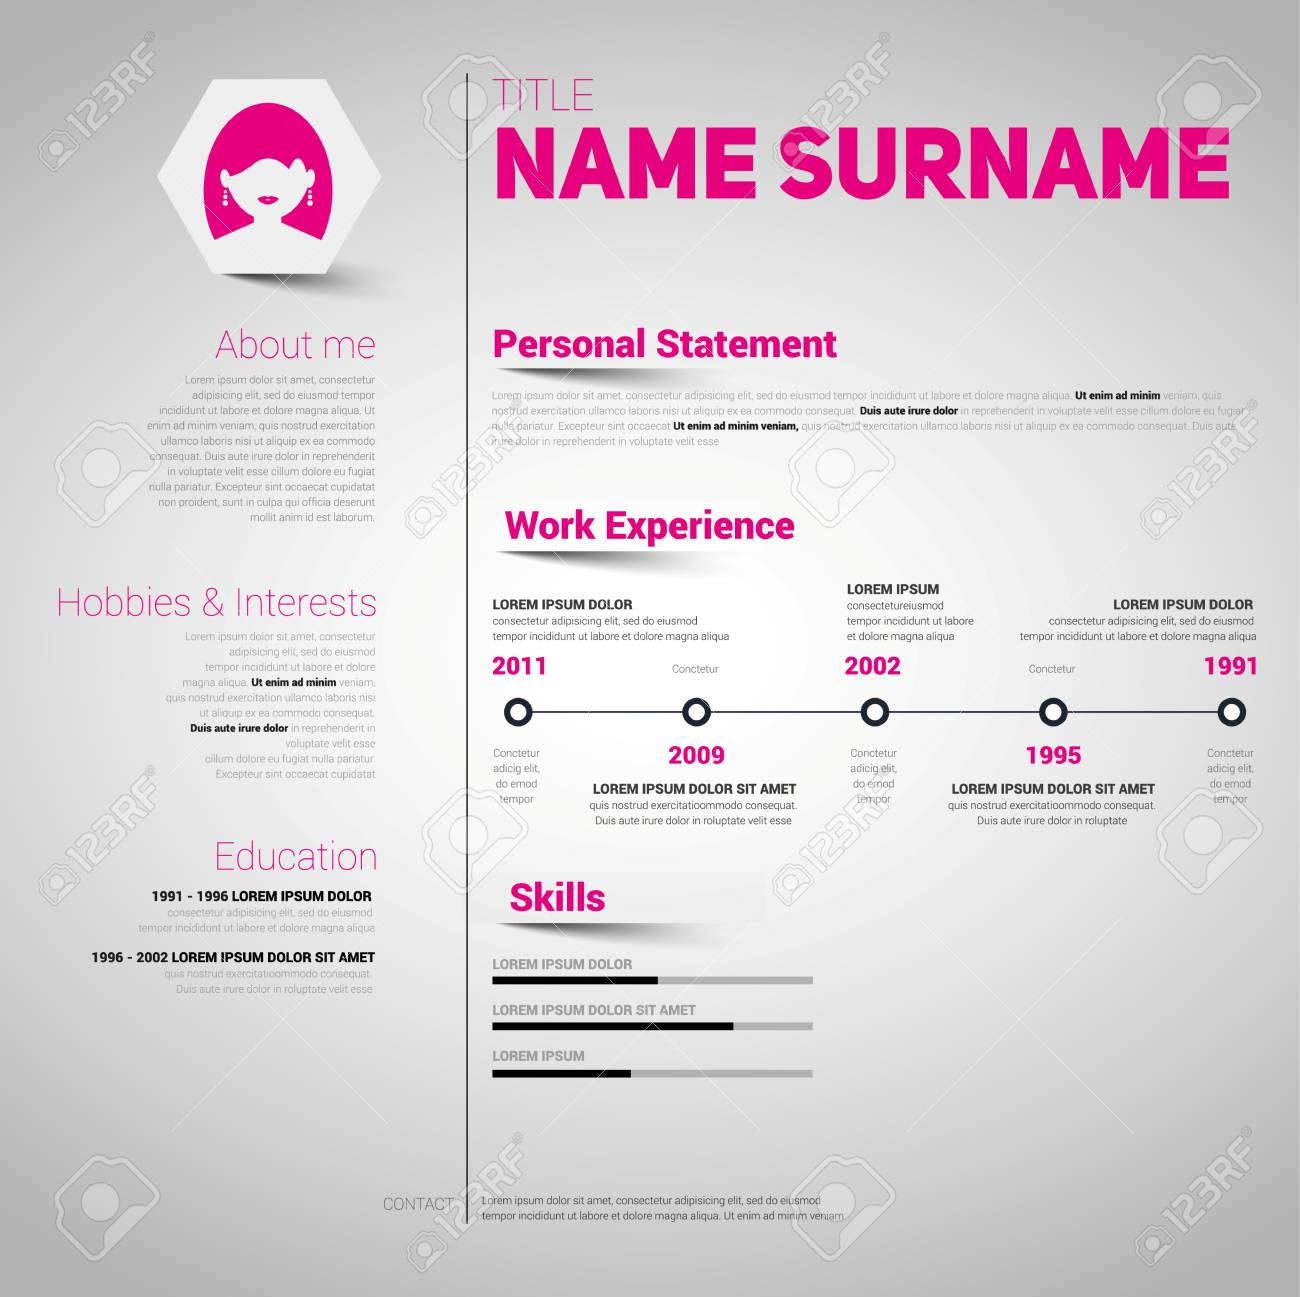 Minimalist CV, Resume Template With Simple Design, Vector Royalty ...